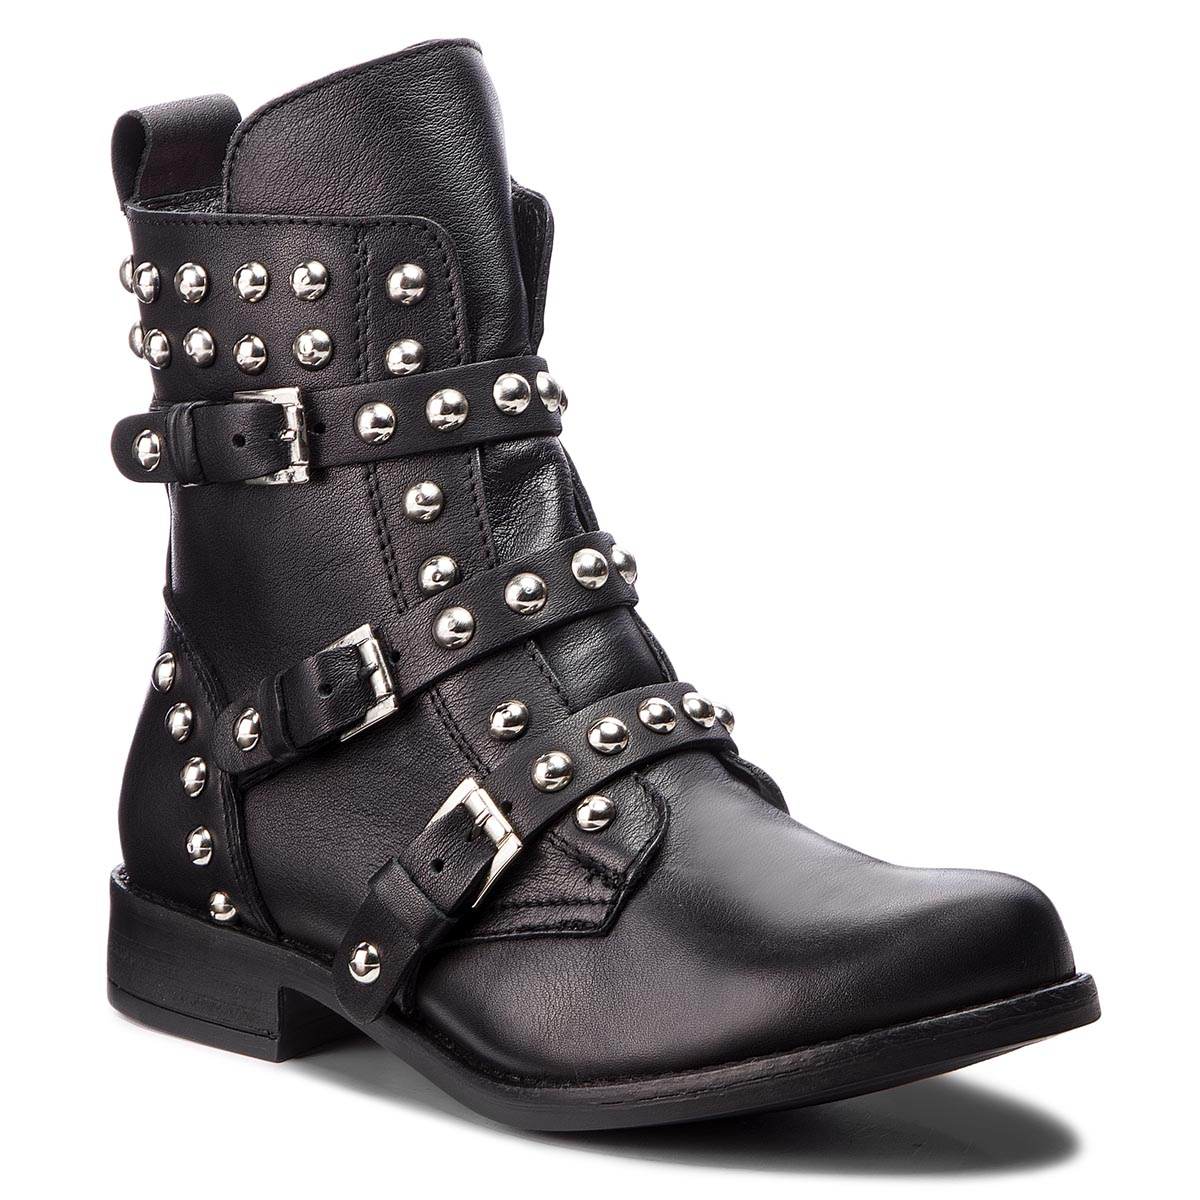 Botine STEVE MADDEN - Spunky Bikerboot SM11000099-03001-017 Black Leather